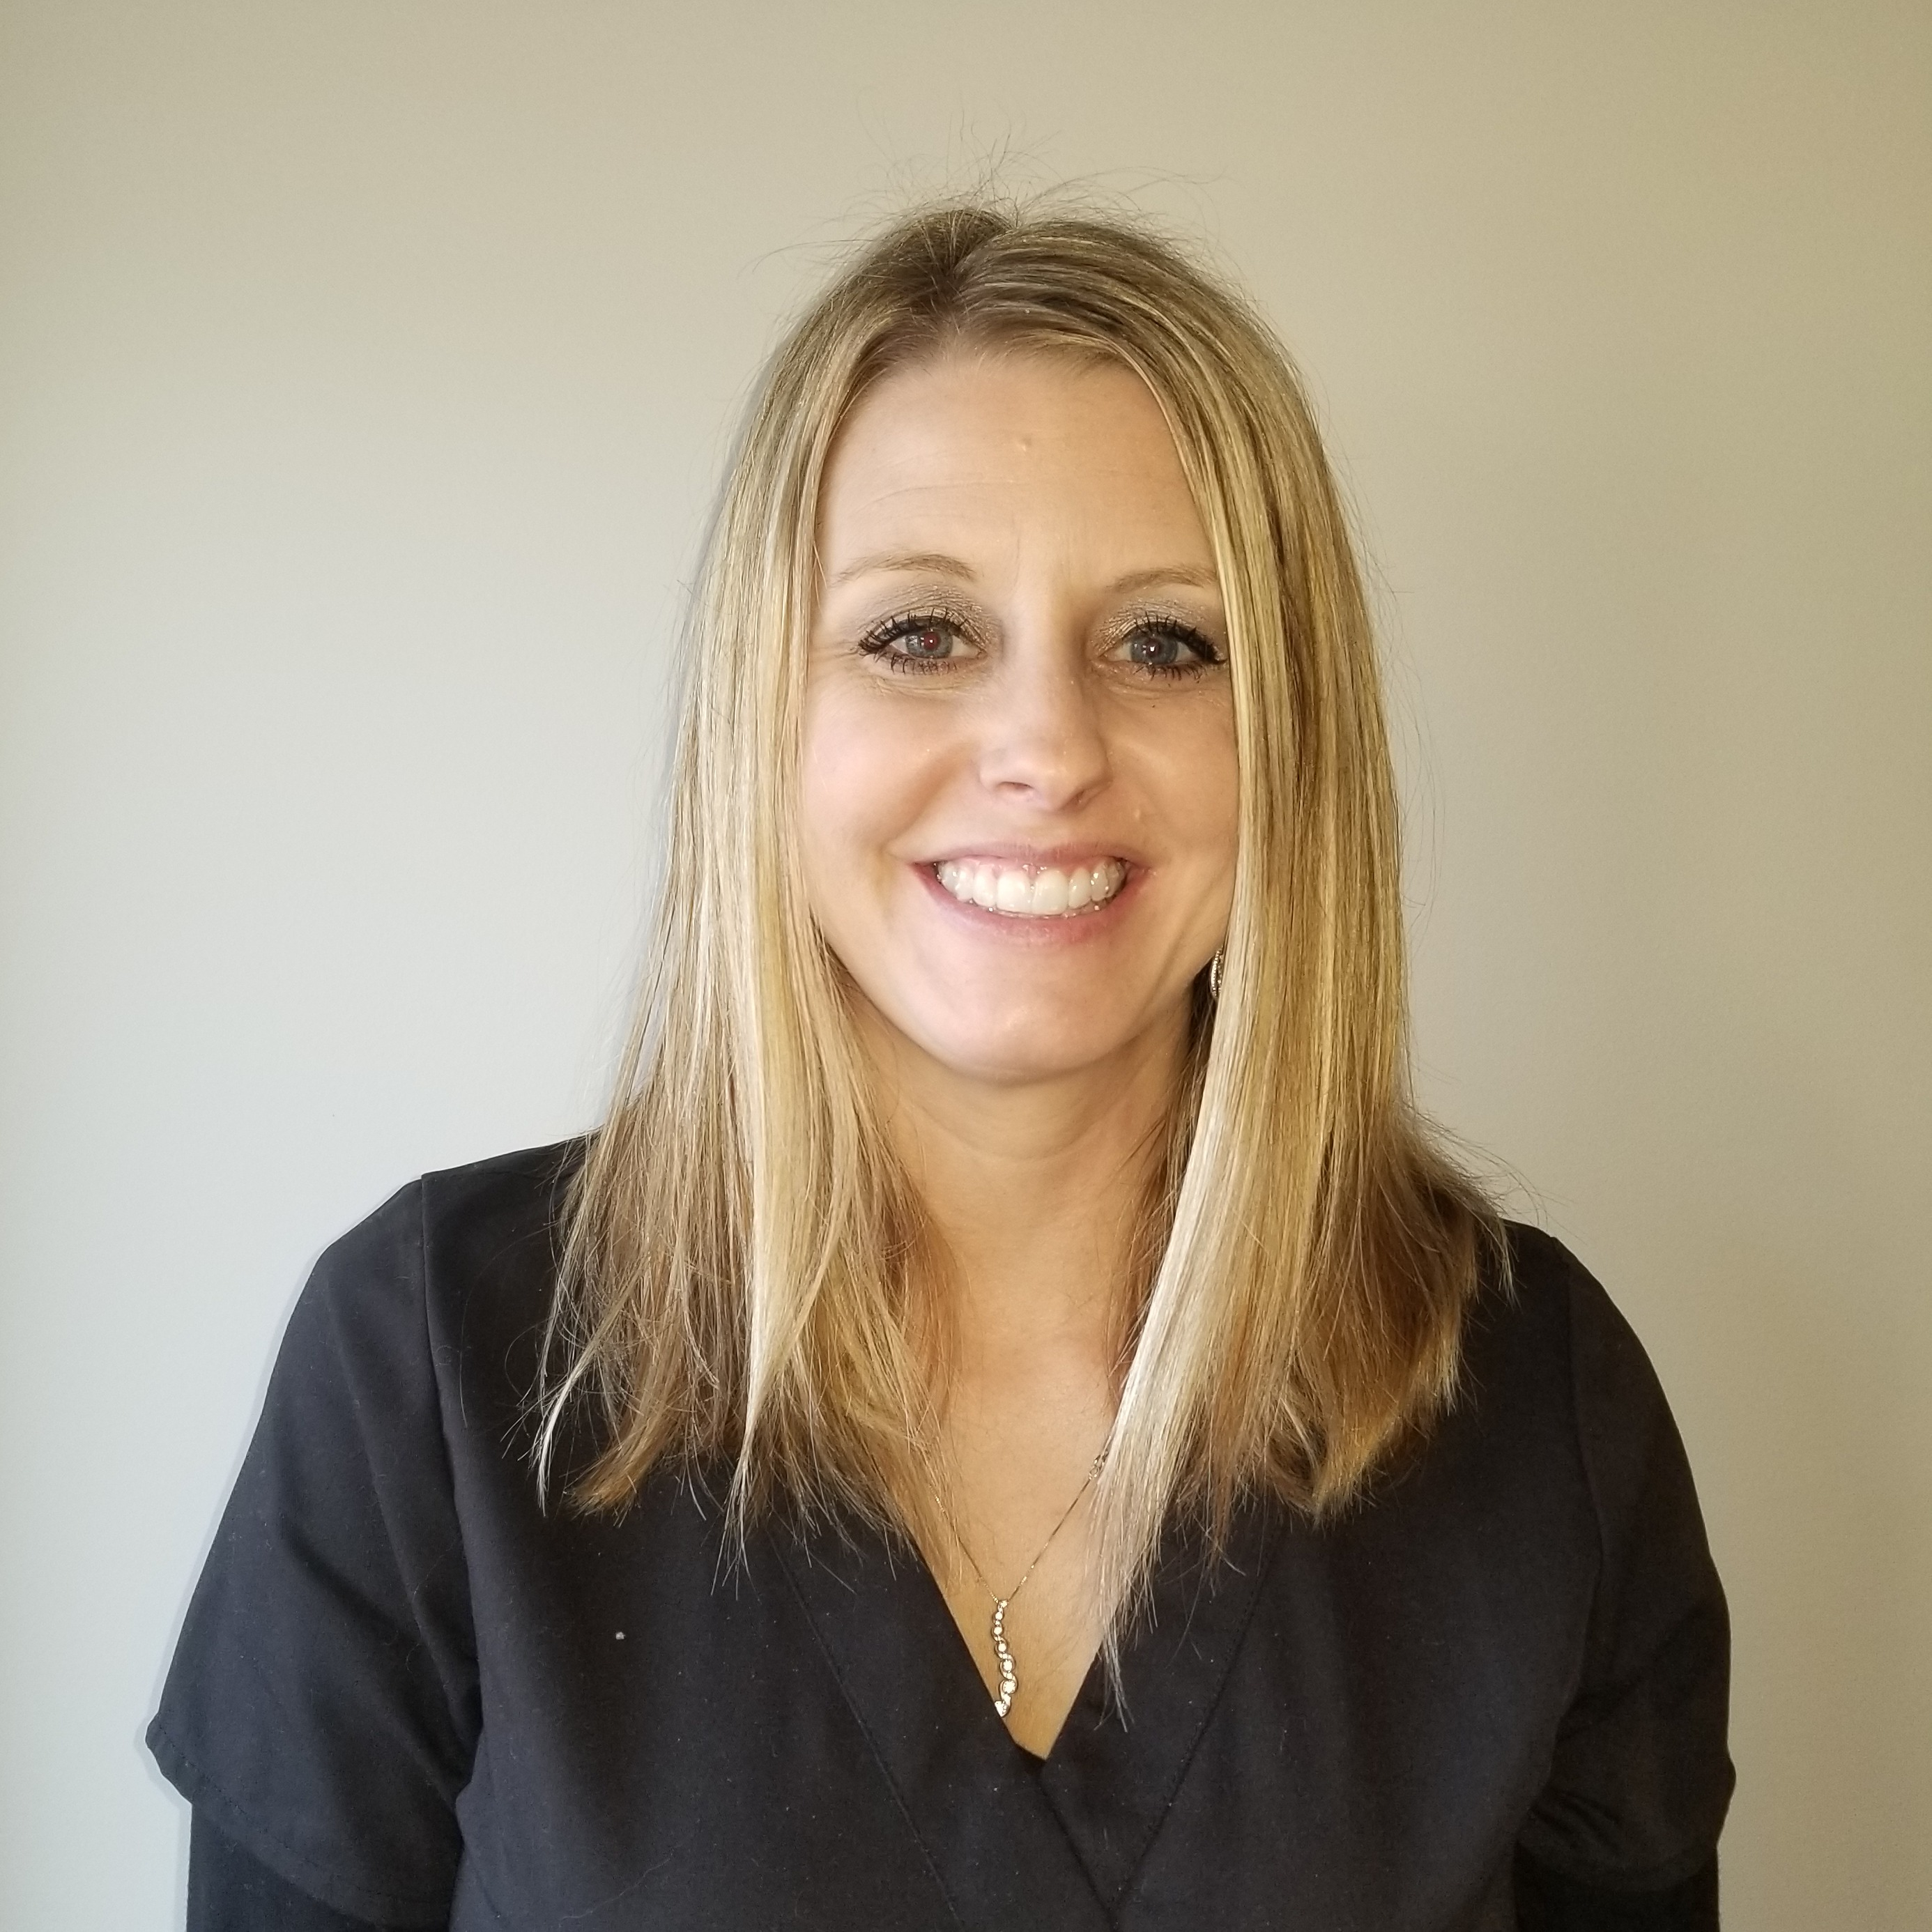 Alanna Rawson of iSmile Orthodontics